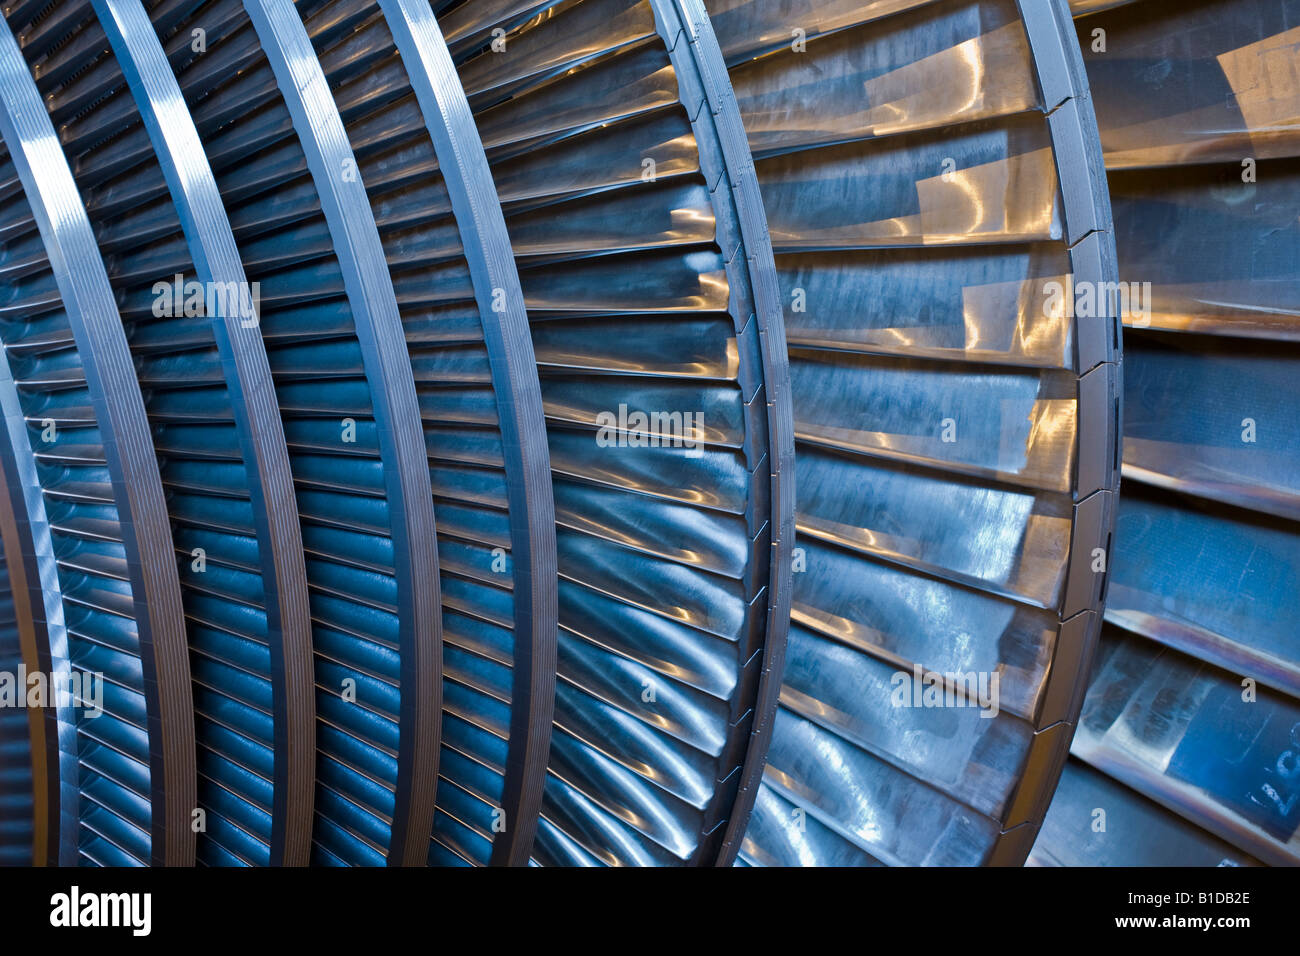 Detail of the blades on a Siemens steam turbine - Stock Image